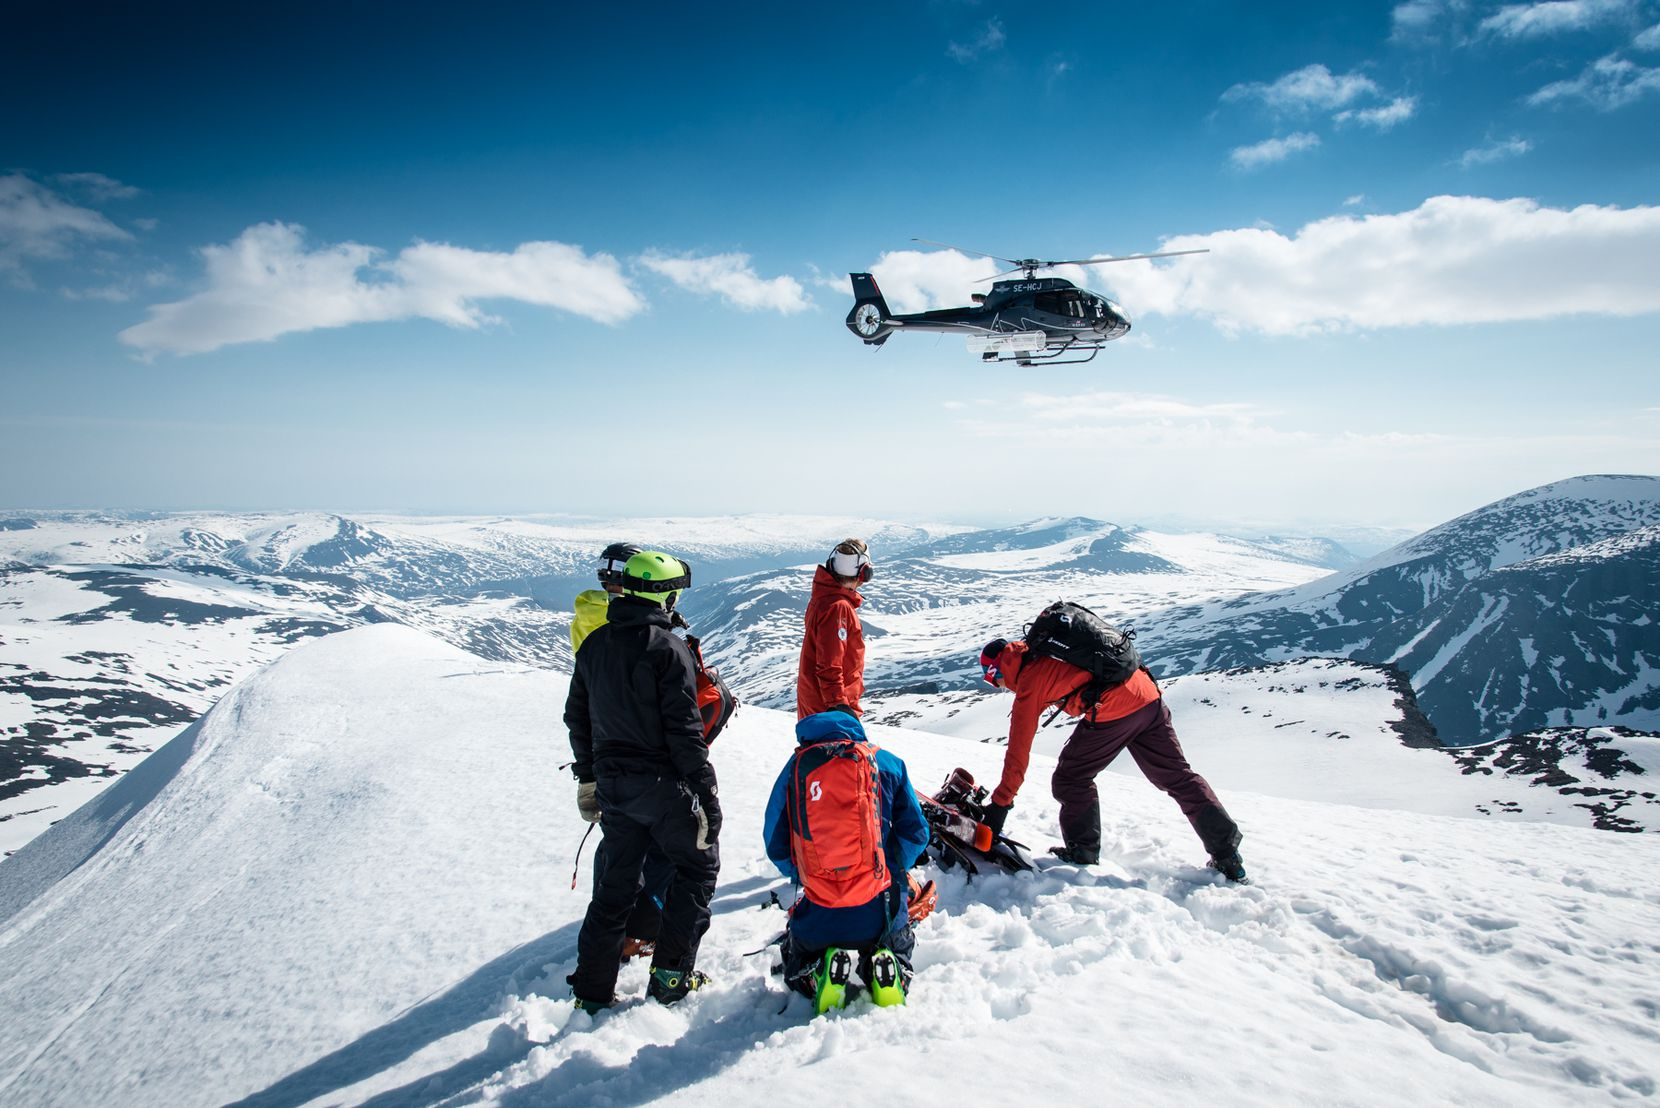 With more than 1 million acres of terrain at Niekhu's doorstep, skiers can collect more than 26,240 vertical feet in a day, spread across a whopping 60 peaks. There is one permanent resort there, with six lifts.